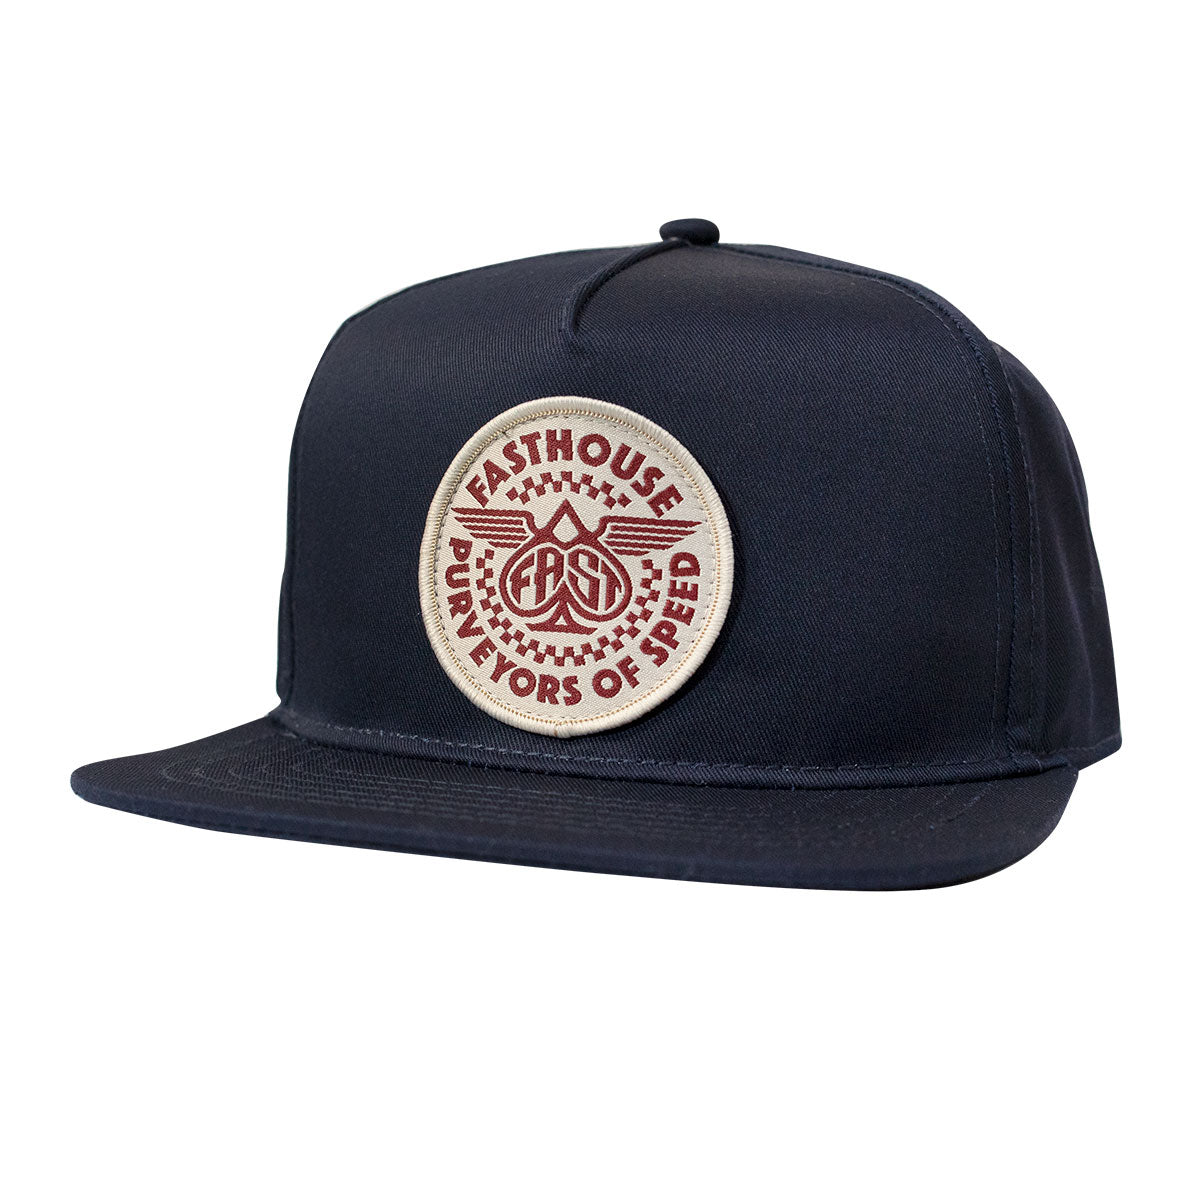 Fasthouse Maverick Hat - Navy